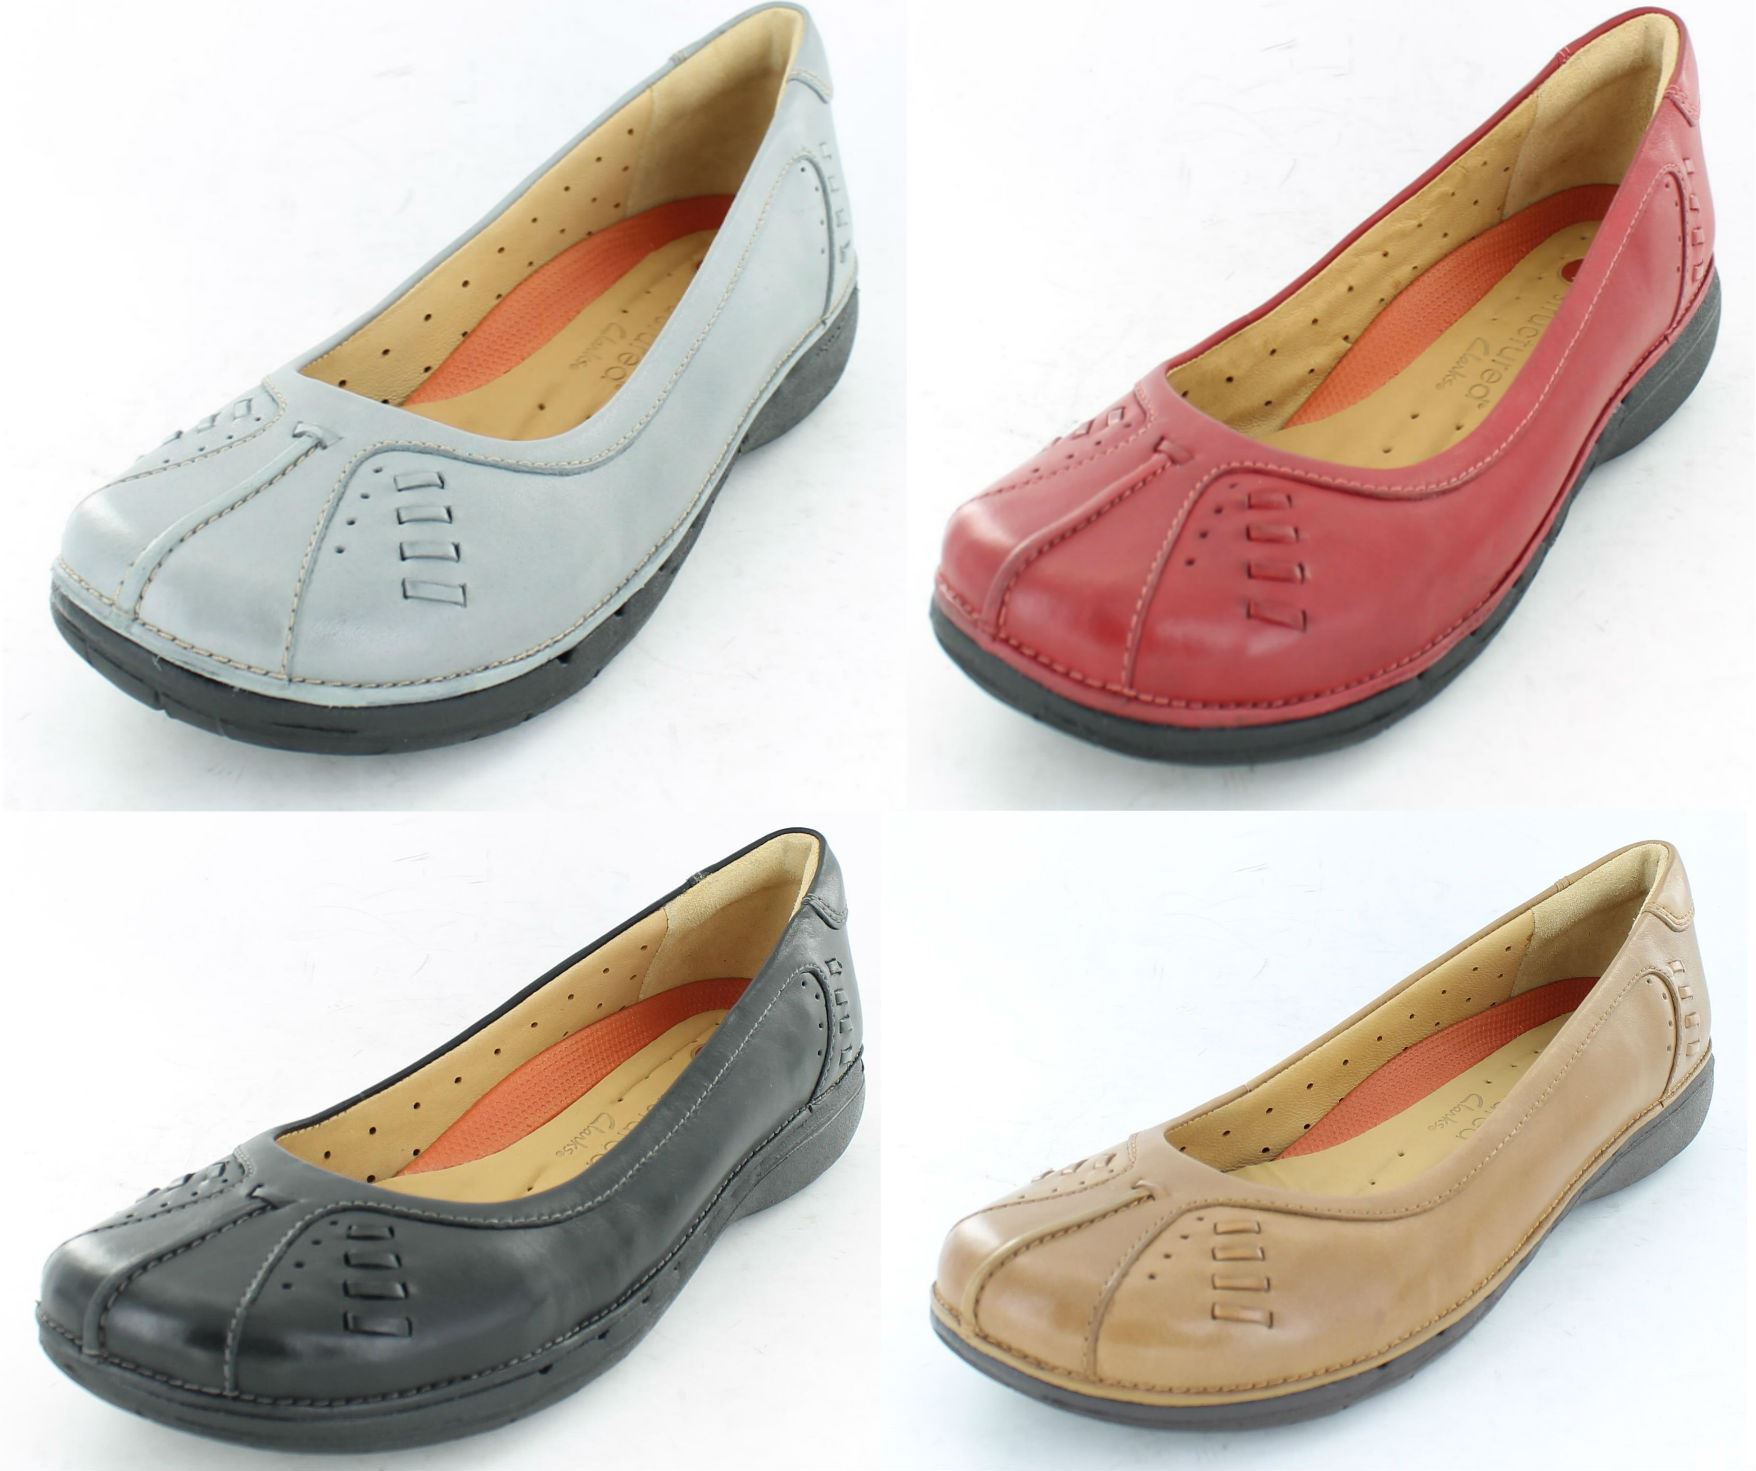 clarks unstructured women's shoes